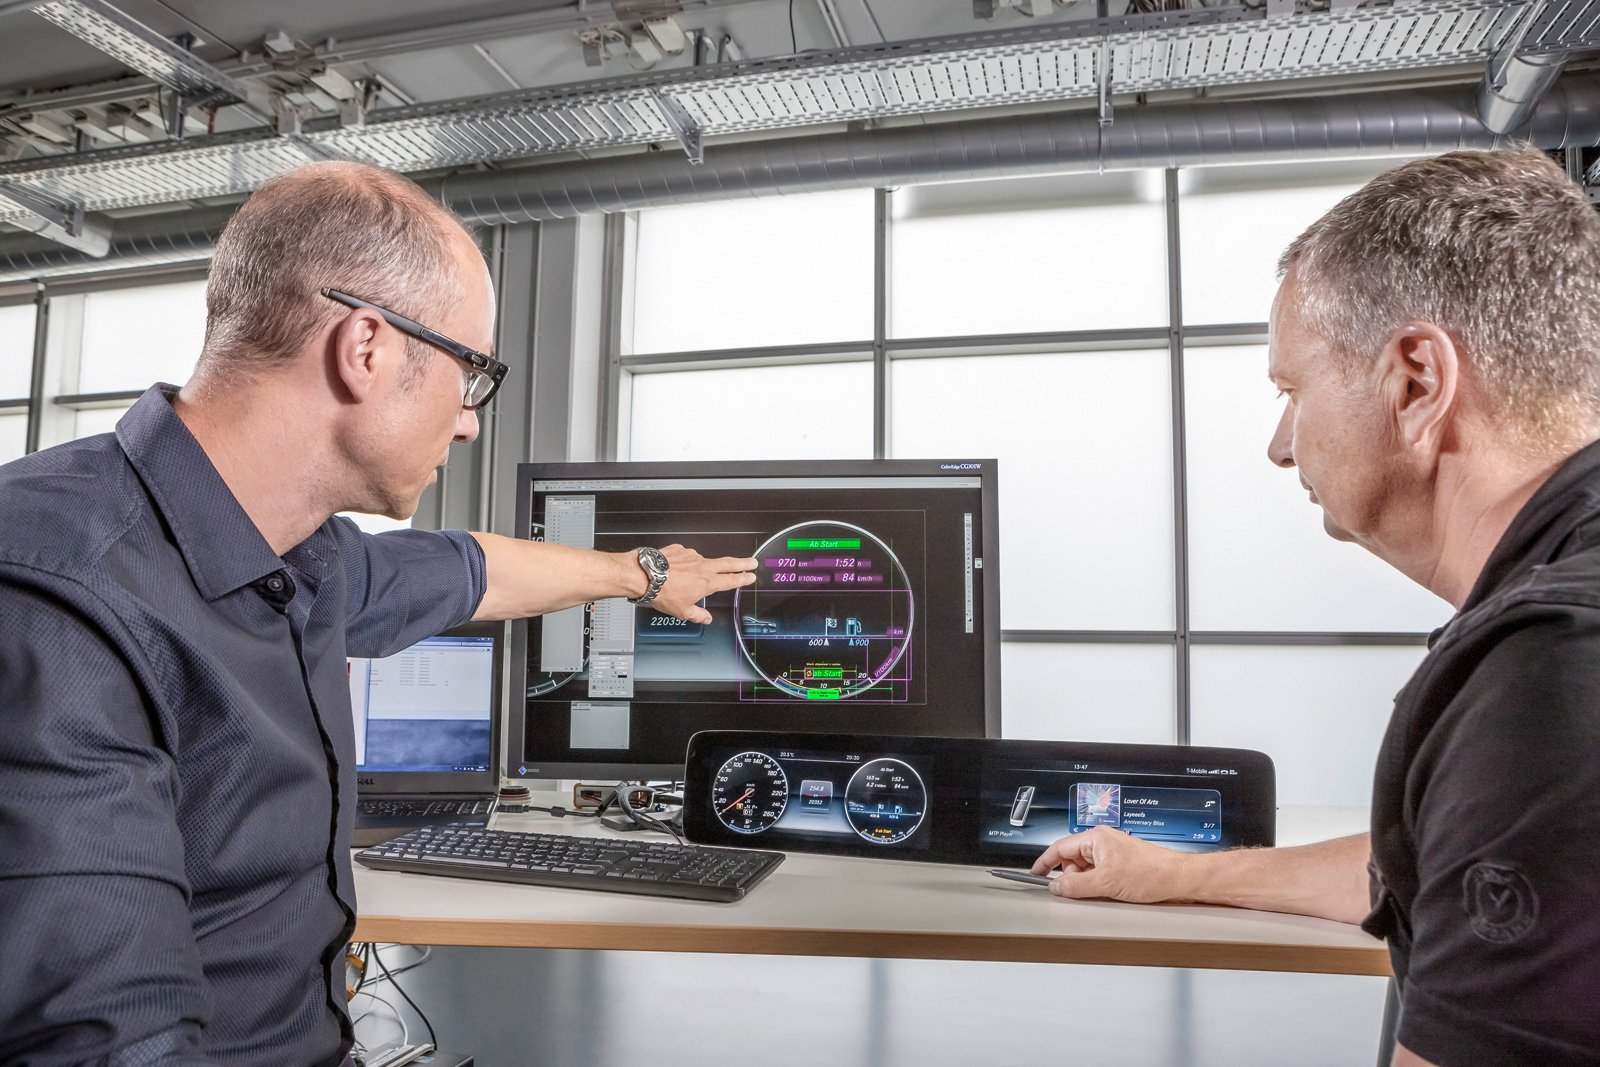 Engineers from two new design-focused business units of Mercedes Benz are discussing how to implement new technology into the E-Class dual-display design.